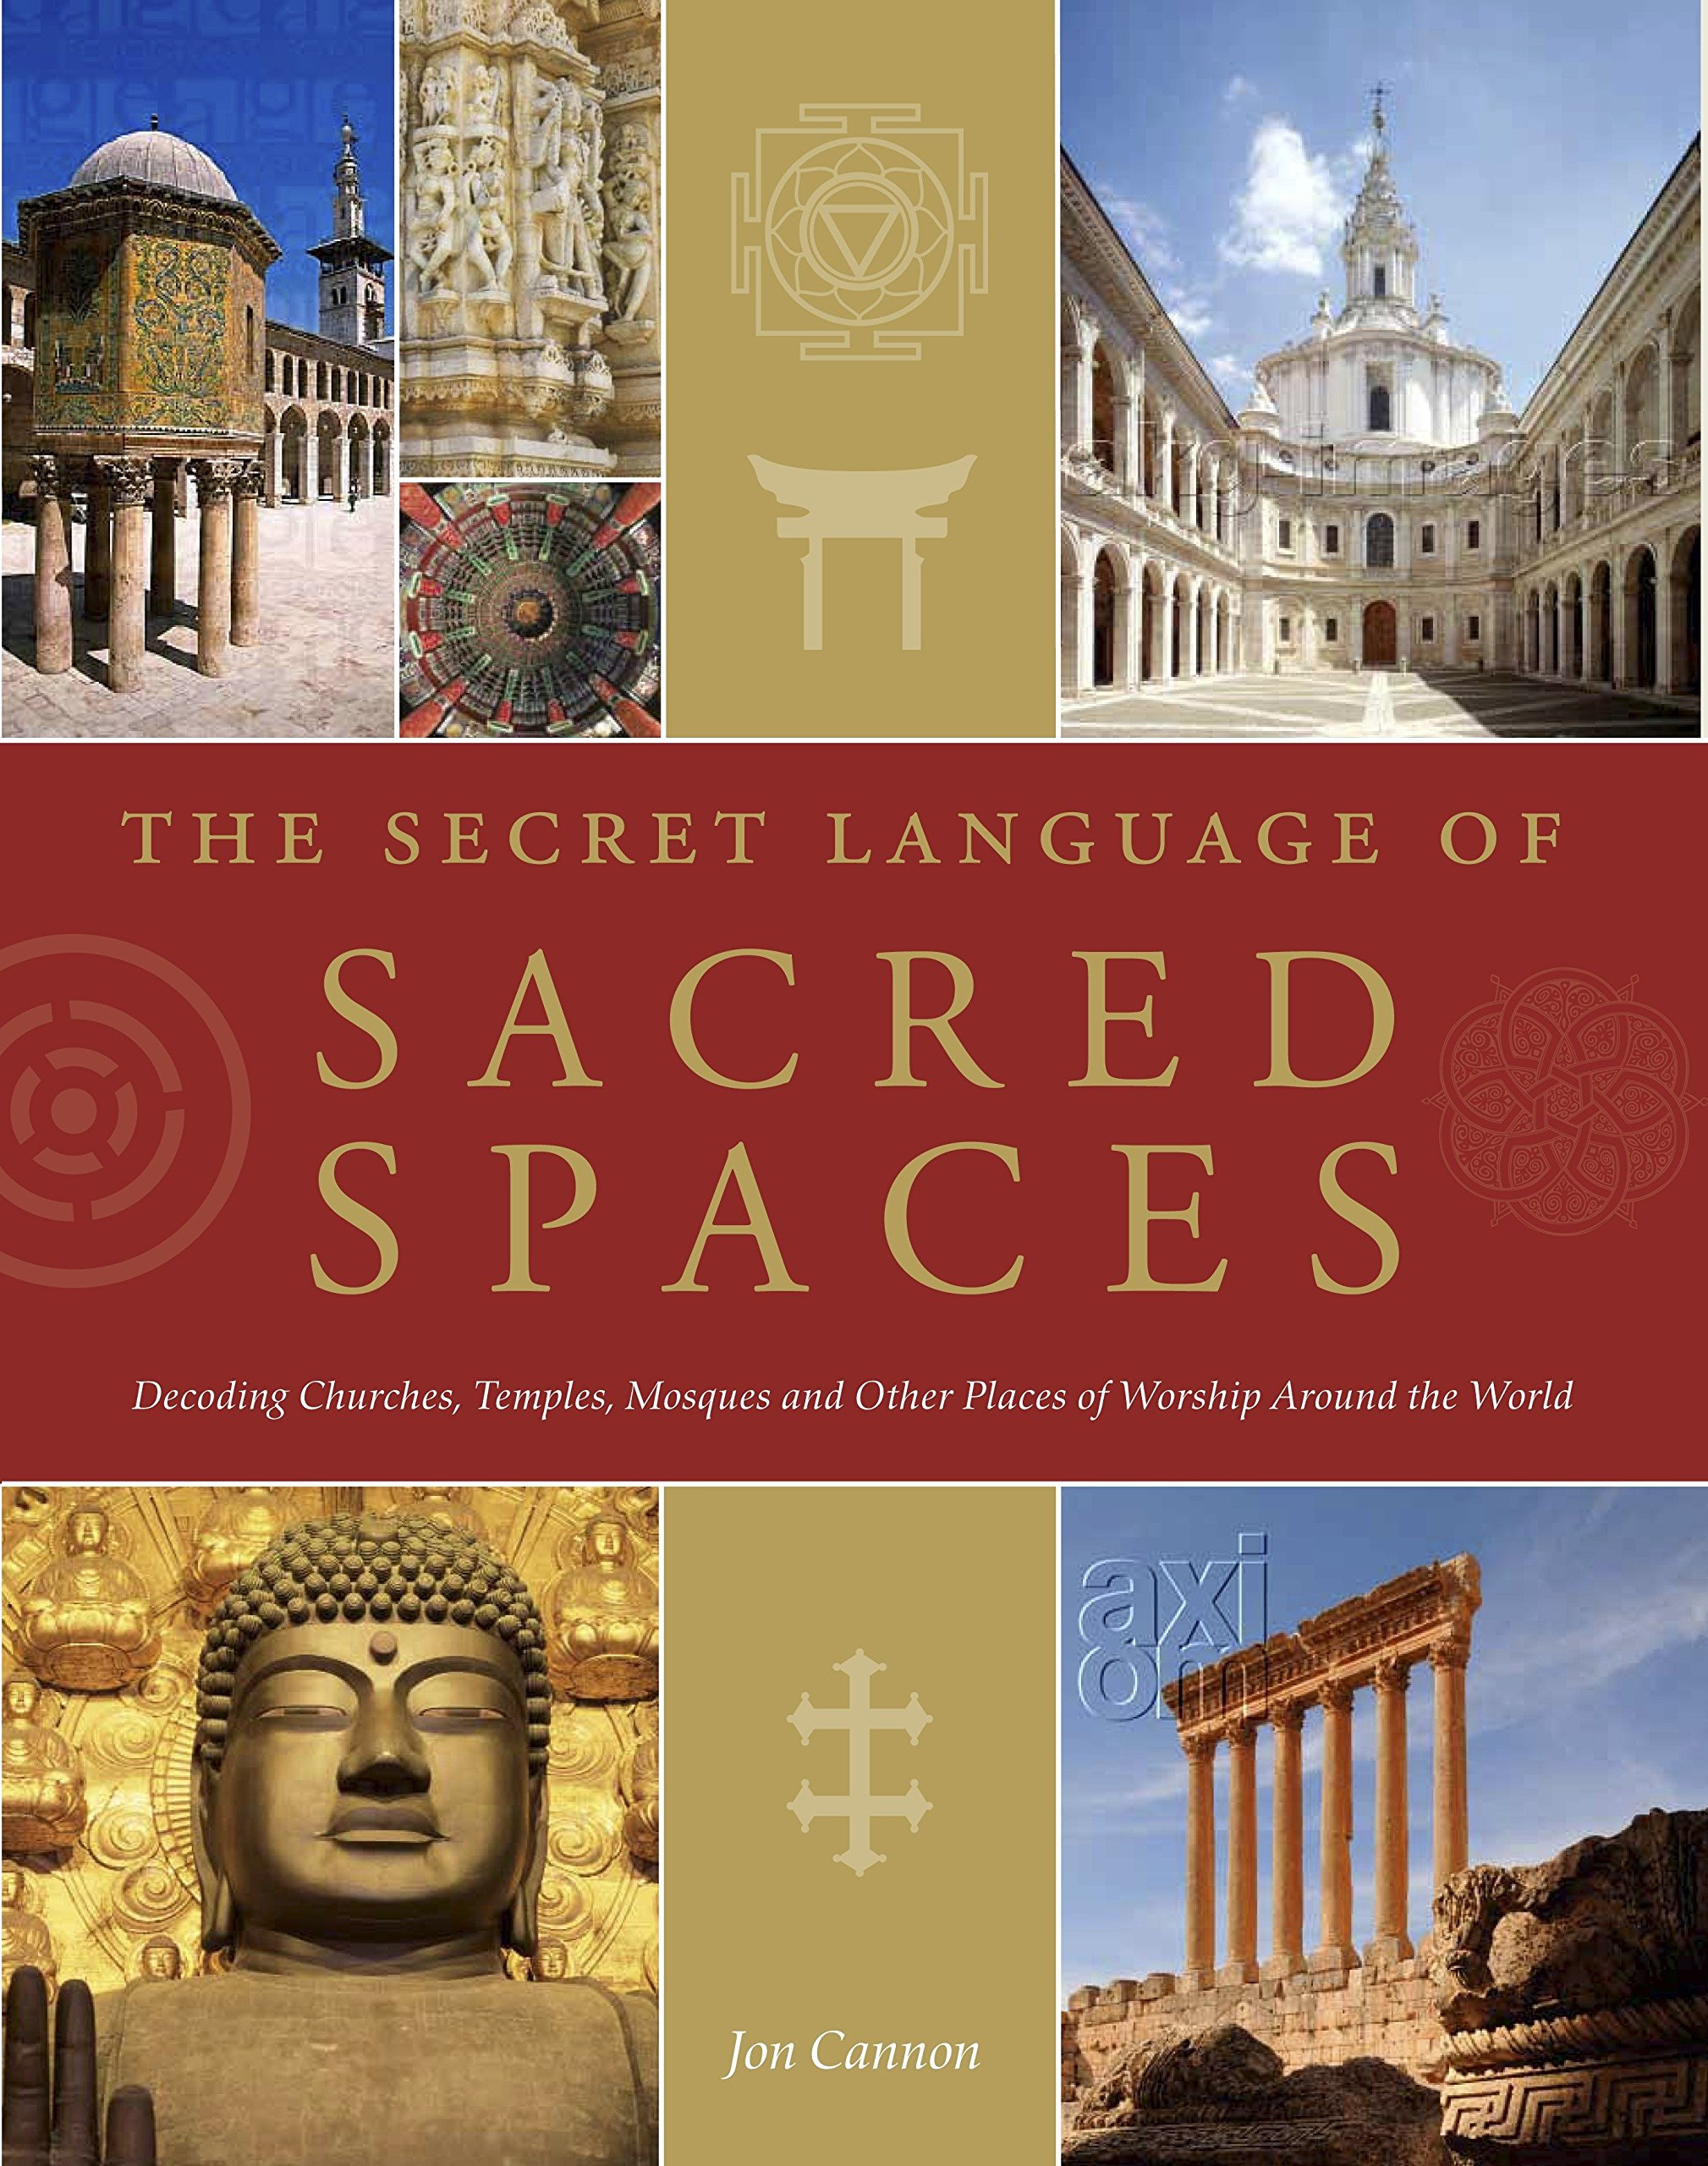 The Secret Language of Sacred Spaces: Decoding Churches, Cathedrals, Temples, Mosques and Other Places of Worship Around the World by Brand: Watkins Publishing